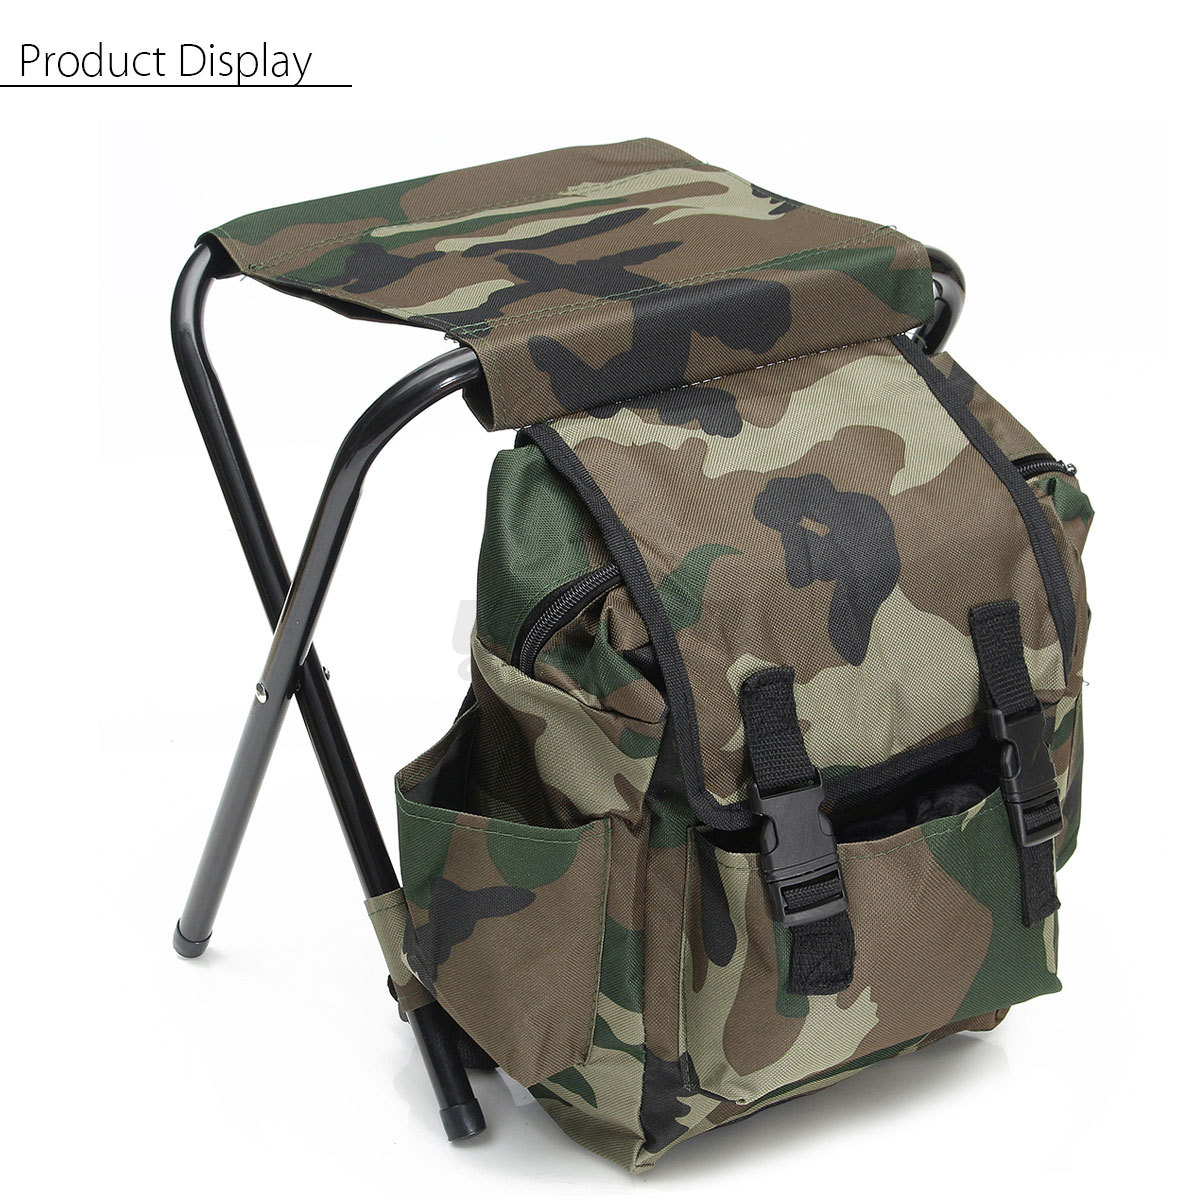 Foldable fishing stool seat chair backpack multi function for Fishing backpack chair